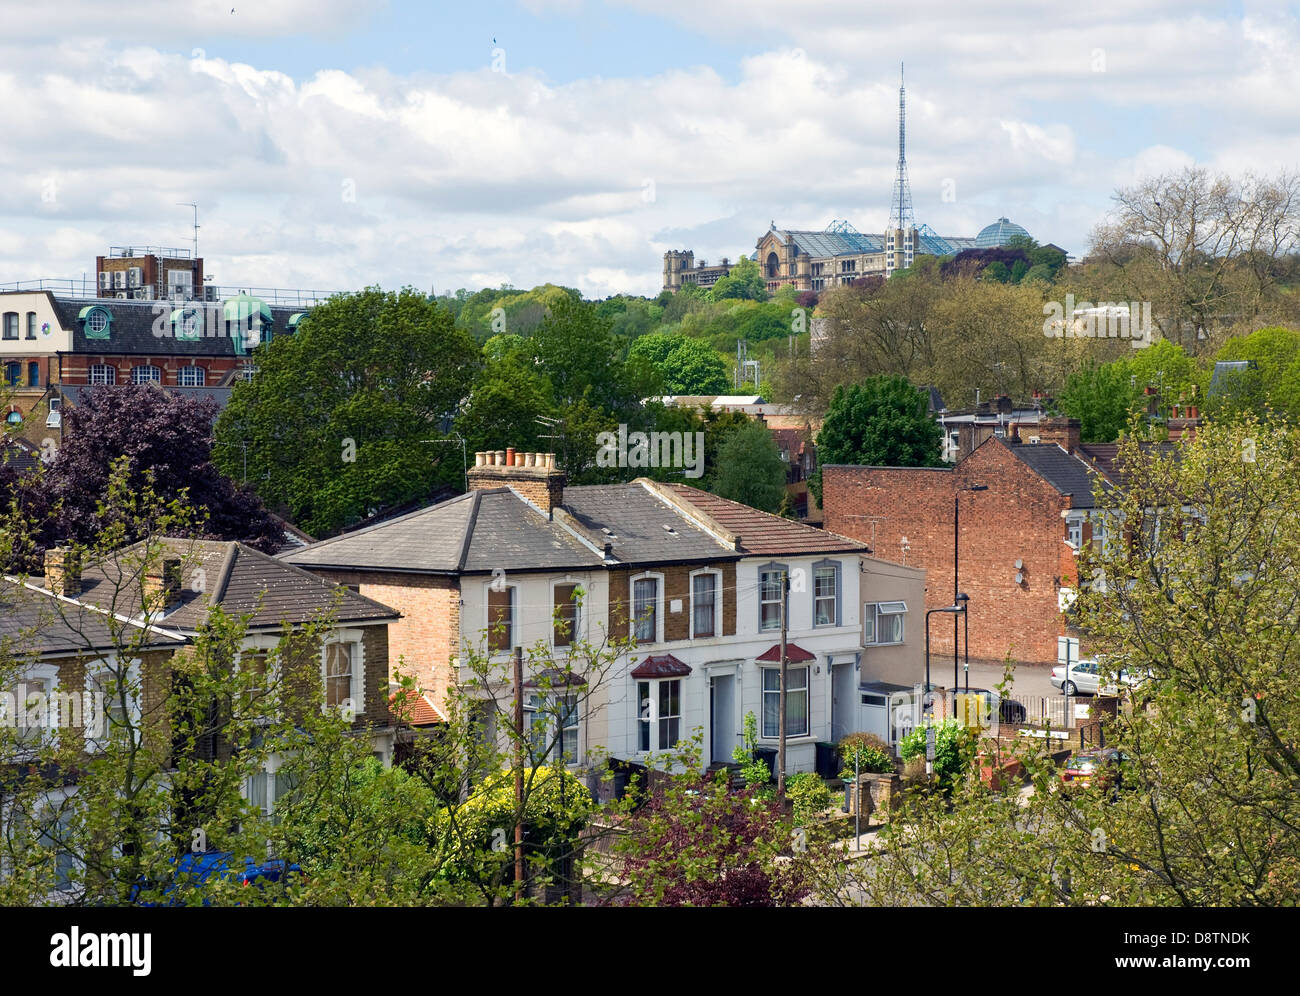 The famous Alexandra Palace looks down over houses in Wood Green, a suburb in Haringey, north London - Stock Image